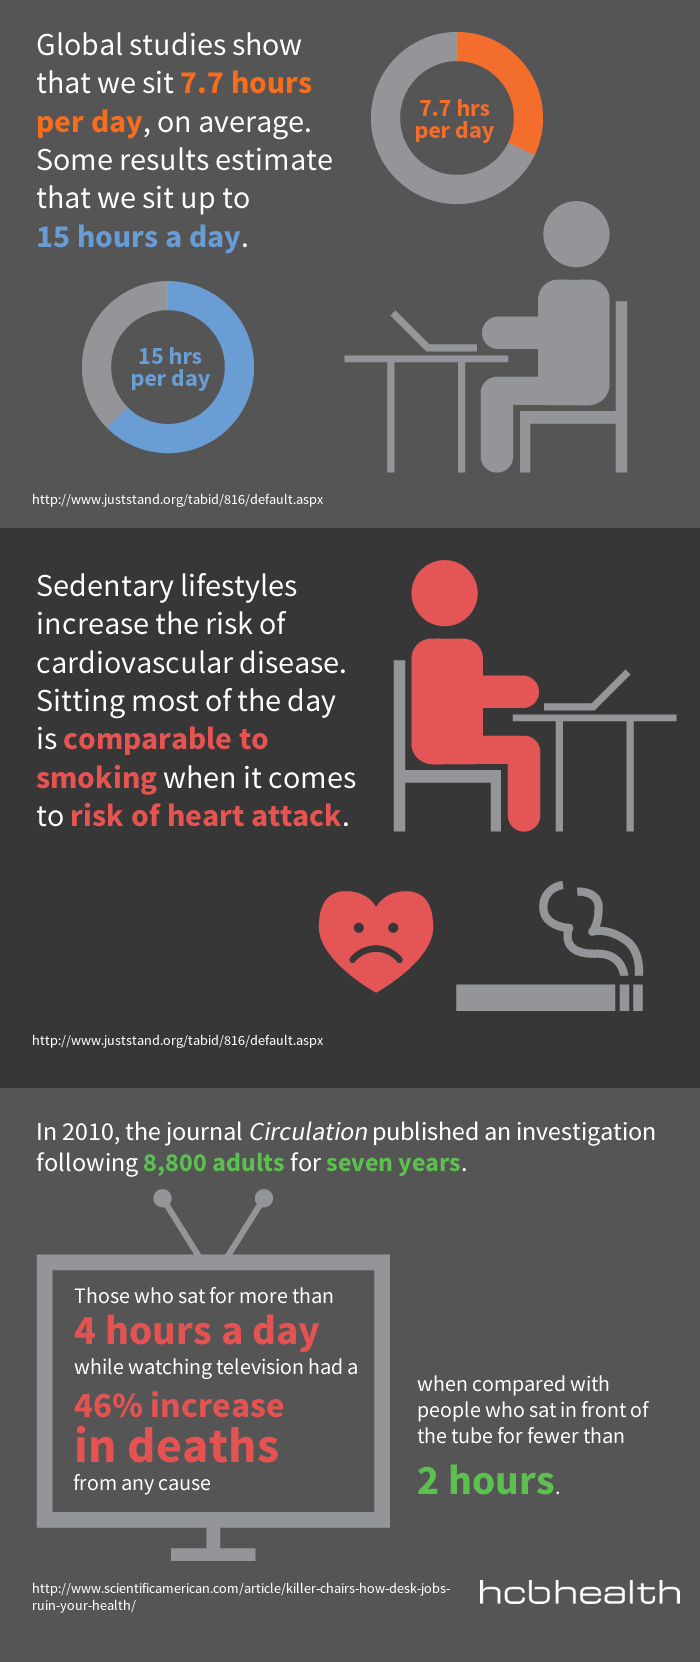 Hcb Health Is Taking A Stand Against Sitting Here Are Some Facts About The Long Term Effects Of Sitting Sedentary Lifestyle Infographic Health Is